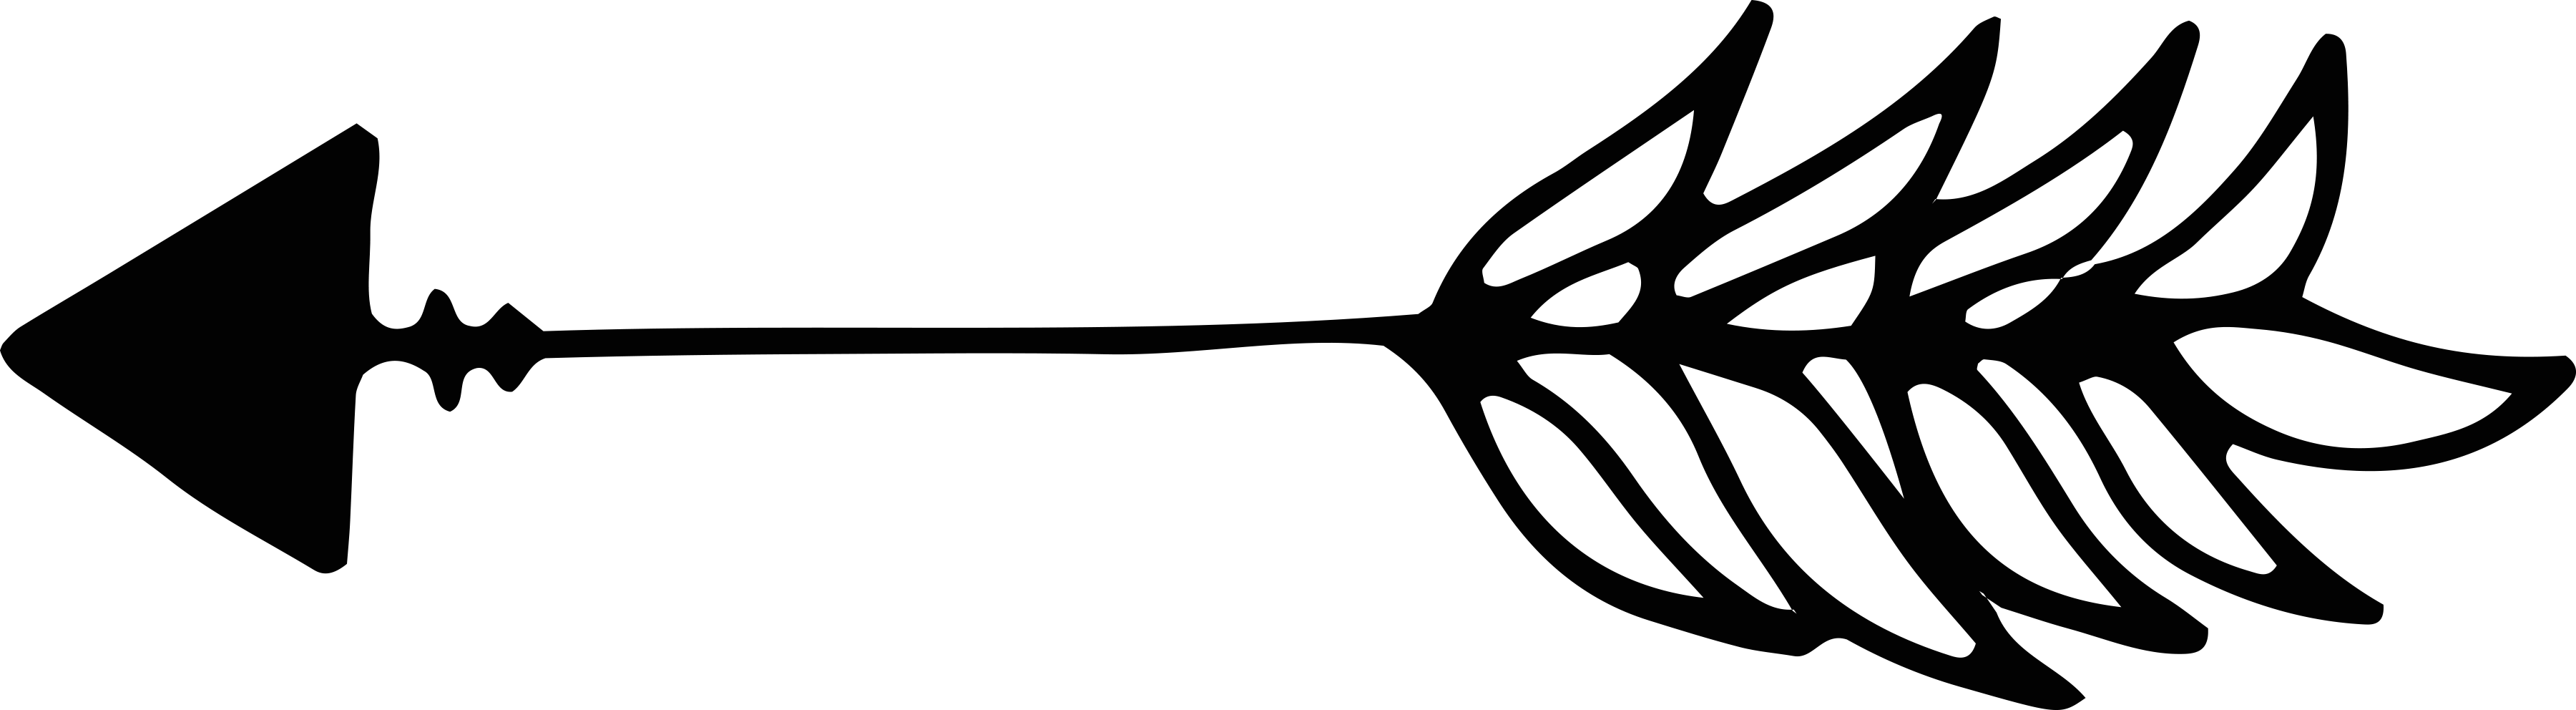 Classic vector arrow. Fptfy png projects to